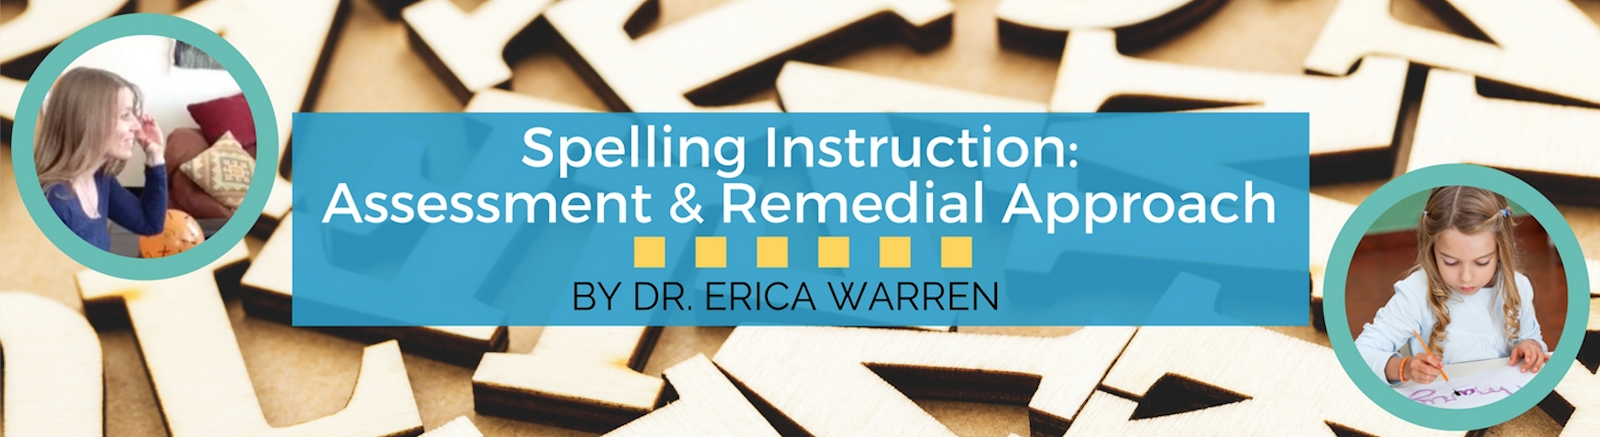 Spelling instruction course